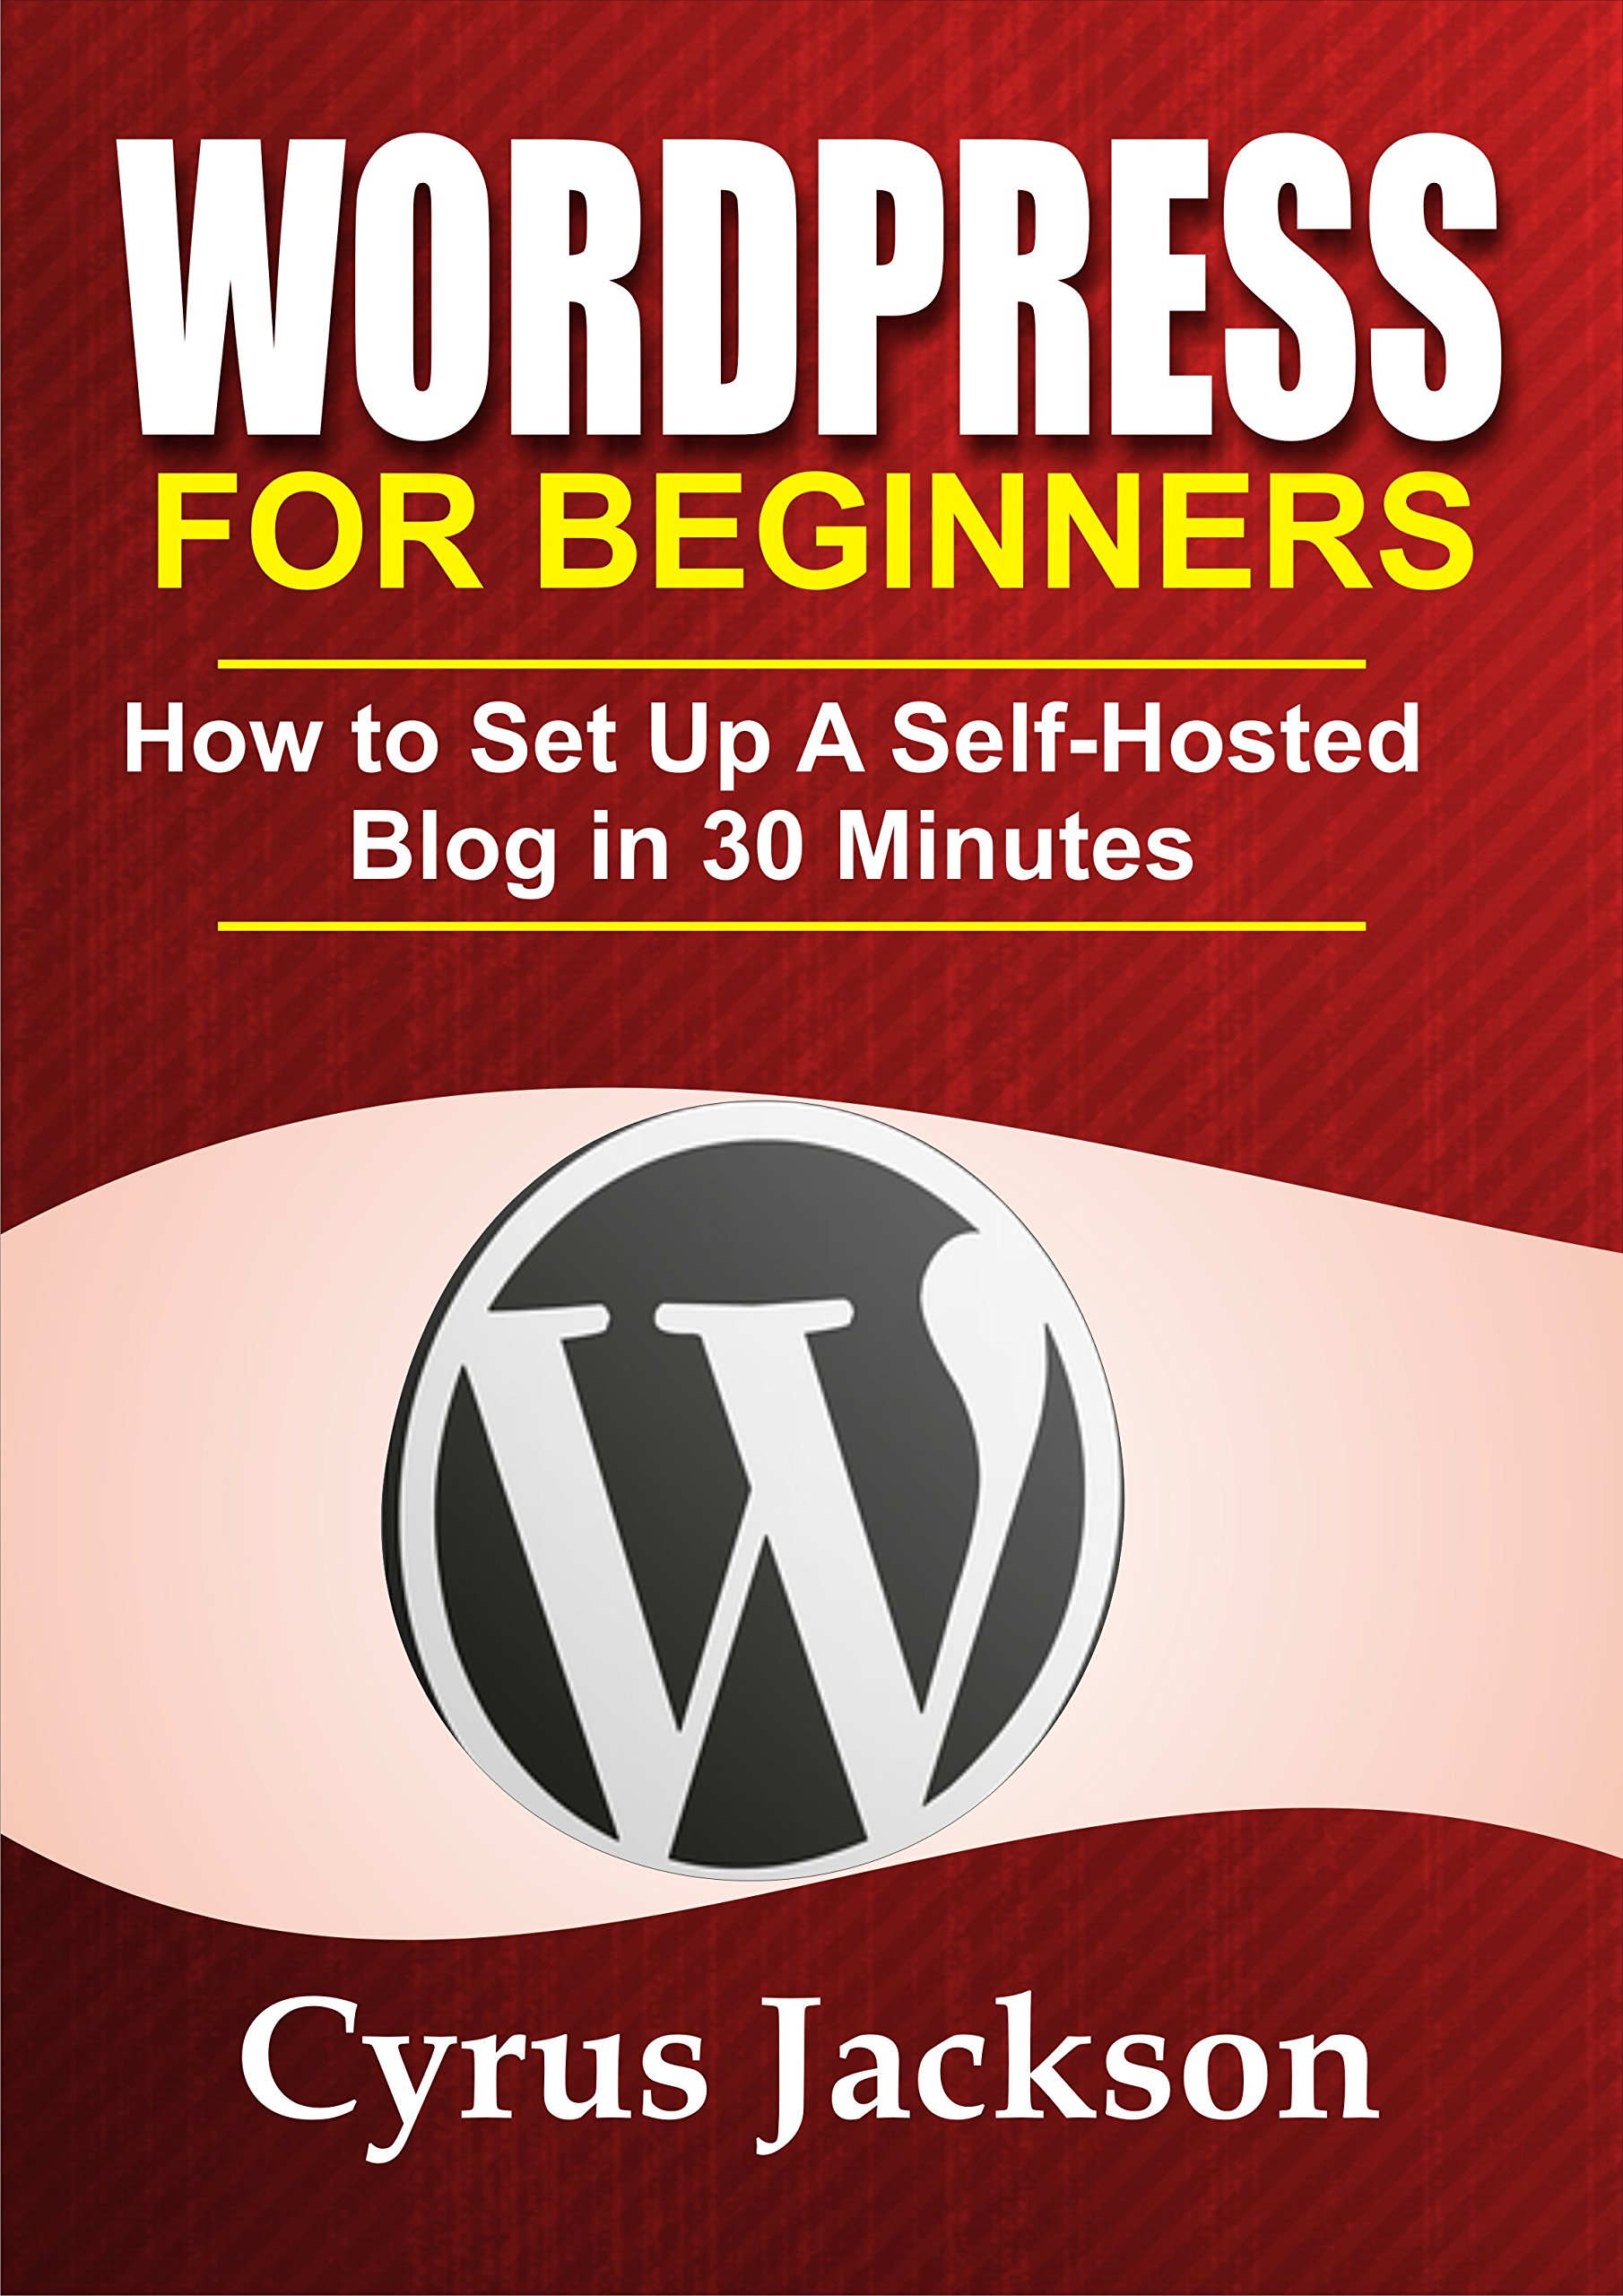 WordPress For Beginners 2020: How To Set Up A Self-Hosted WordPress Blog In 30 Minutes (Updated For 2020)